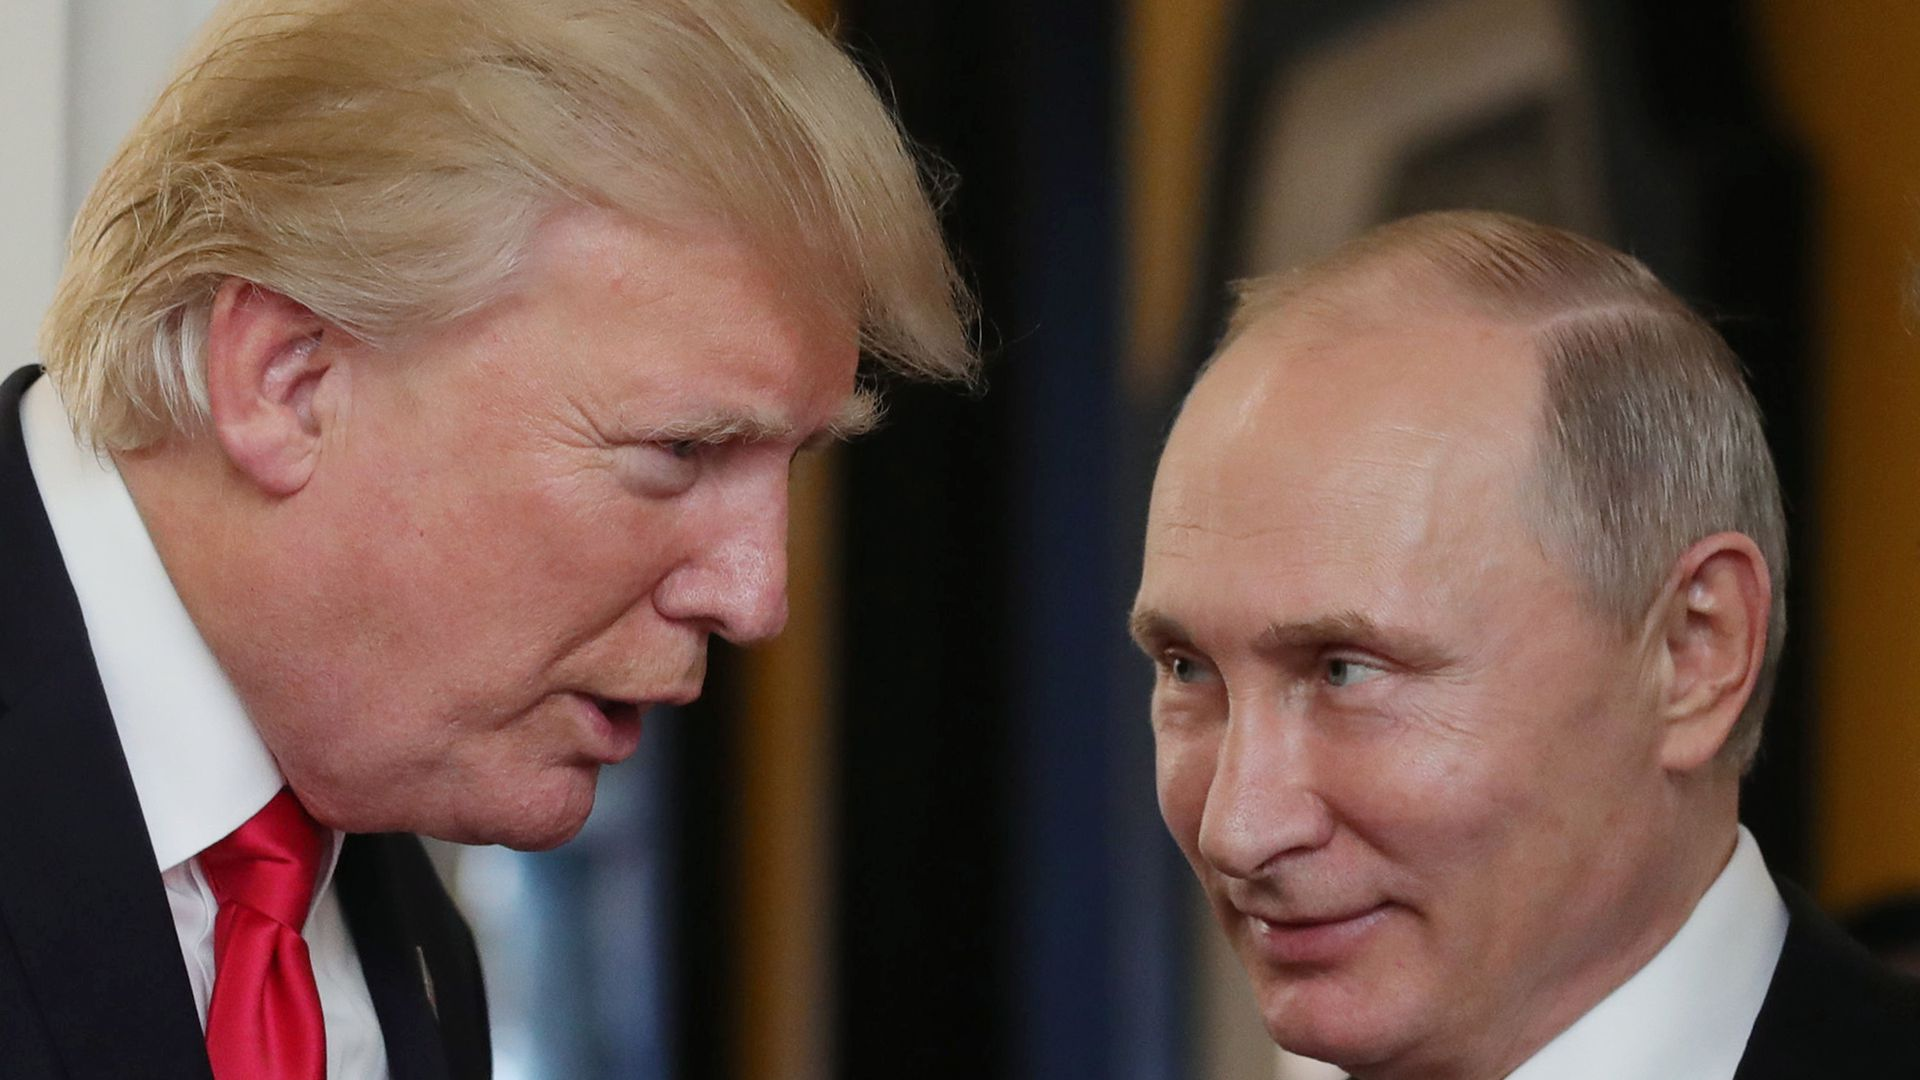 Donald Trump speaks to Vladimir Putin at close proximity.